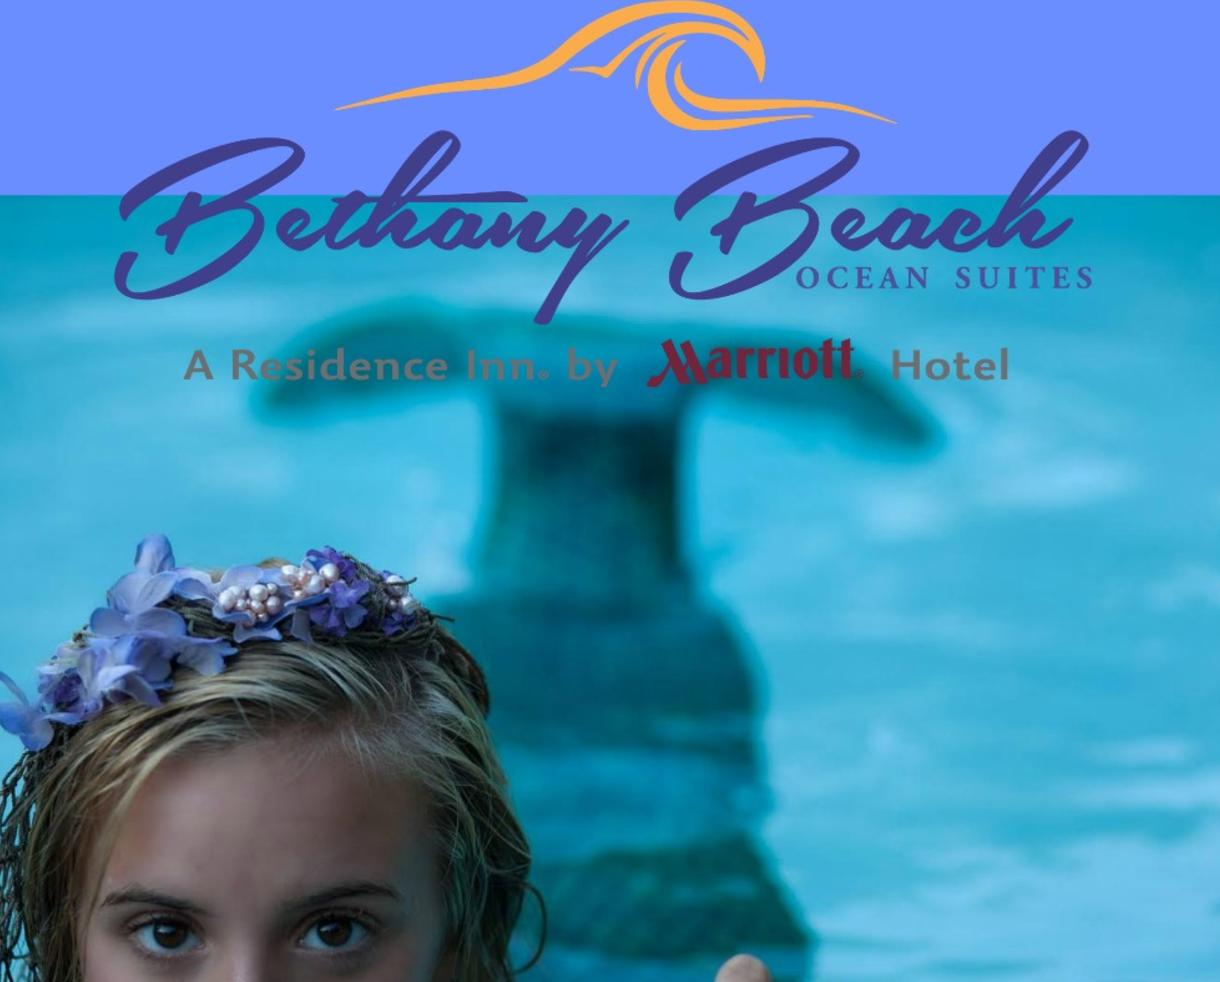 $542 for 2-Night Pirate Bash & Mermaid Splash Family Getaway - Includes Breakfast Daily, Dinner and MORE at Bethany Beach Ocean Suites - April 7-9, 2017 ($700 Value - 23% Off)